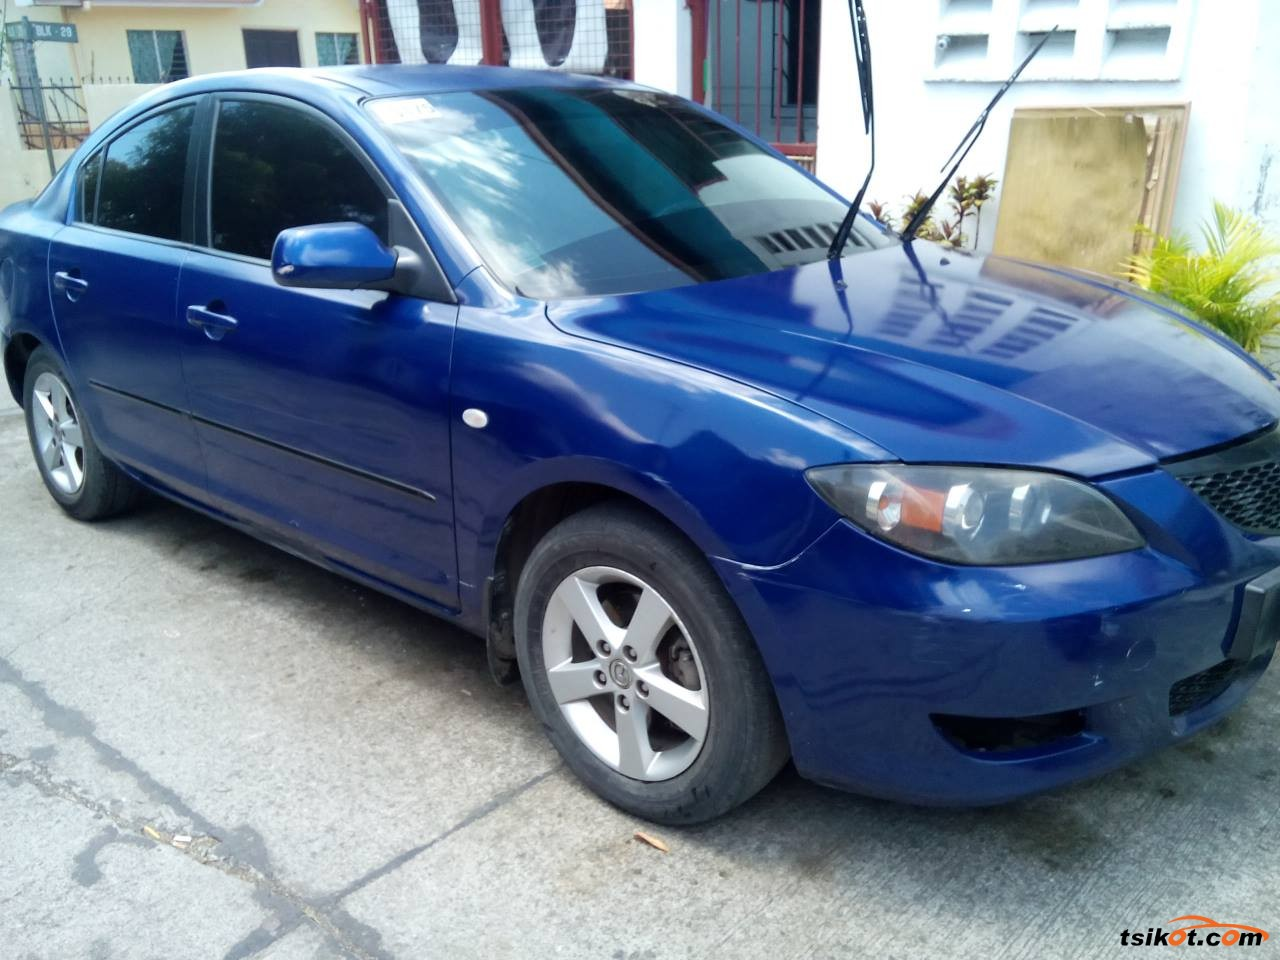 mazda 3 2006 car for sale calabarzon philippines. Black Bedroom Furniture Sets. Home Design Ideas